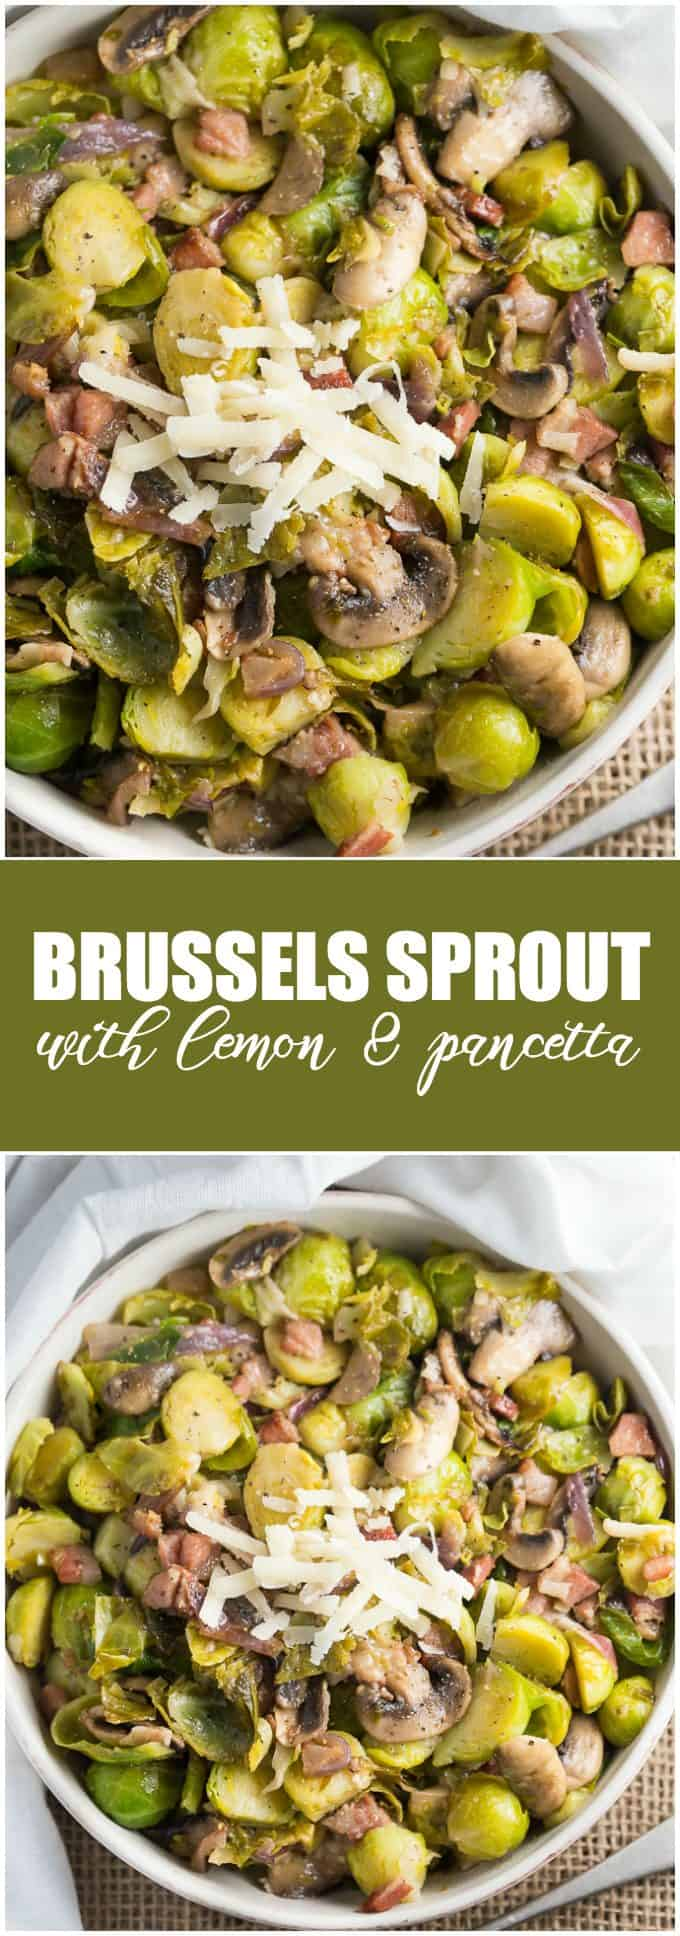 Brussels Sprout with Lemon & Pancetta - This recipe made me love brussels sprout again!